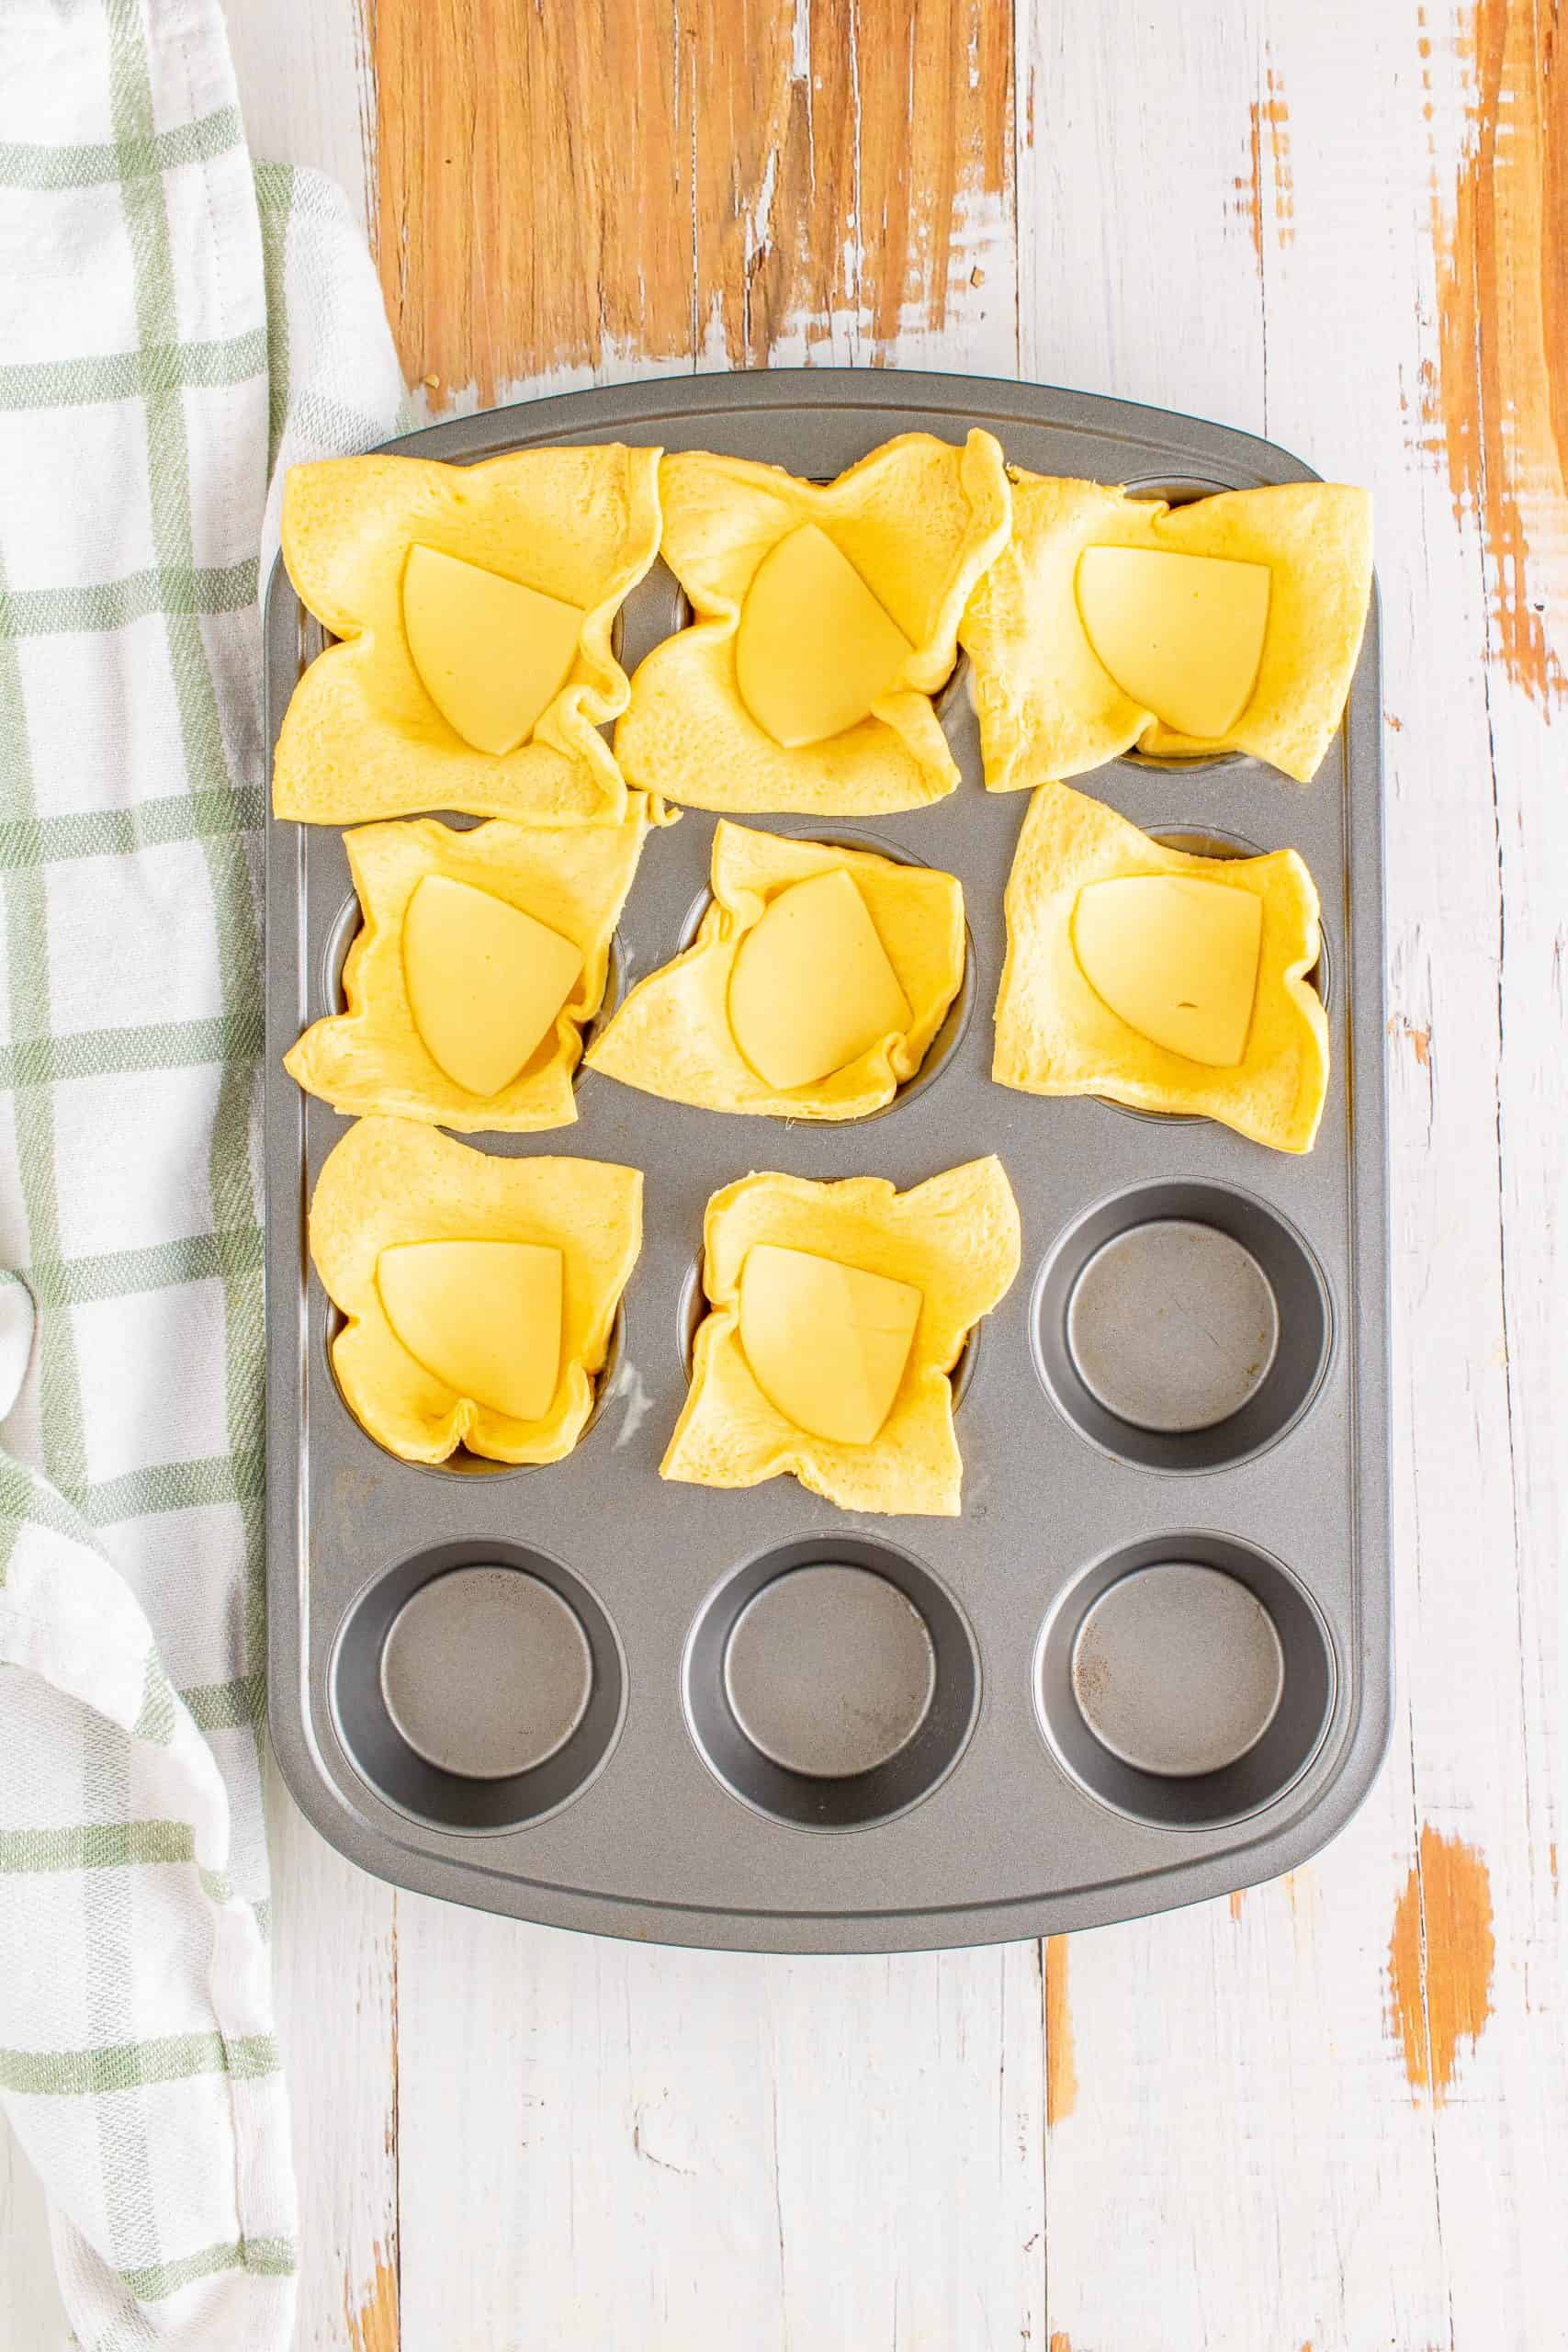 Cheese placed in squares in muffin tin.